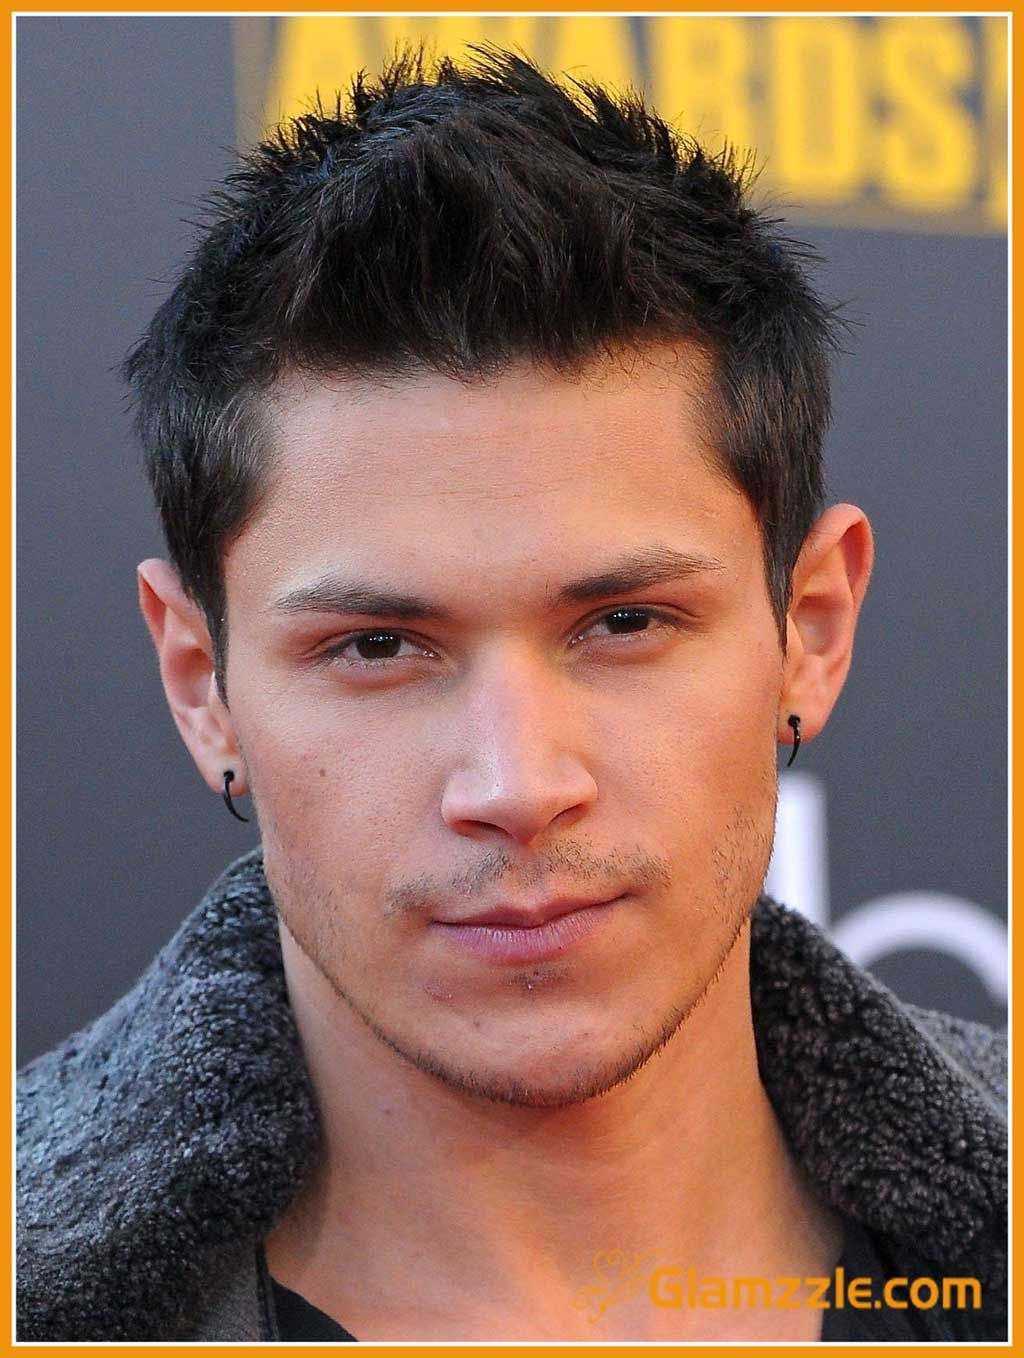 Cool Guy Hairstyles With Short Hair